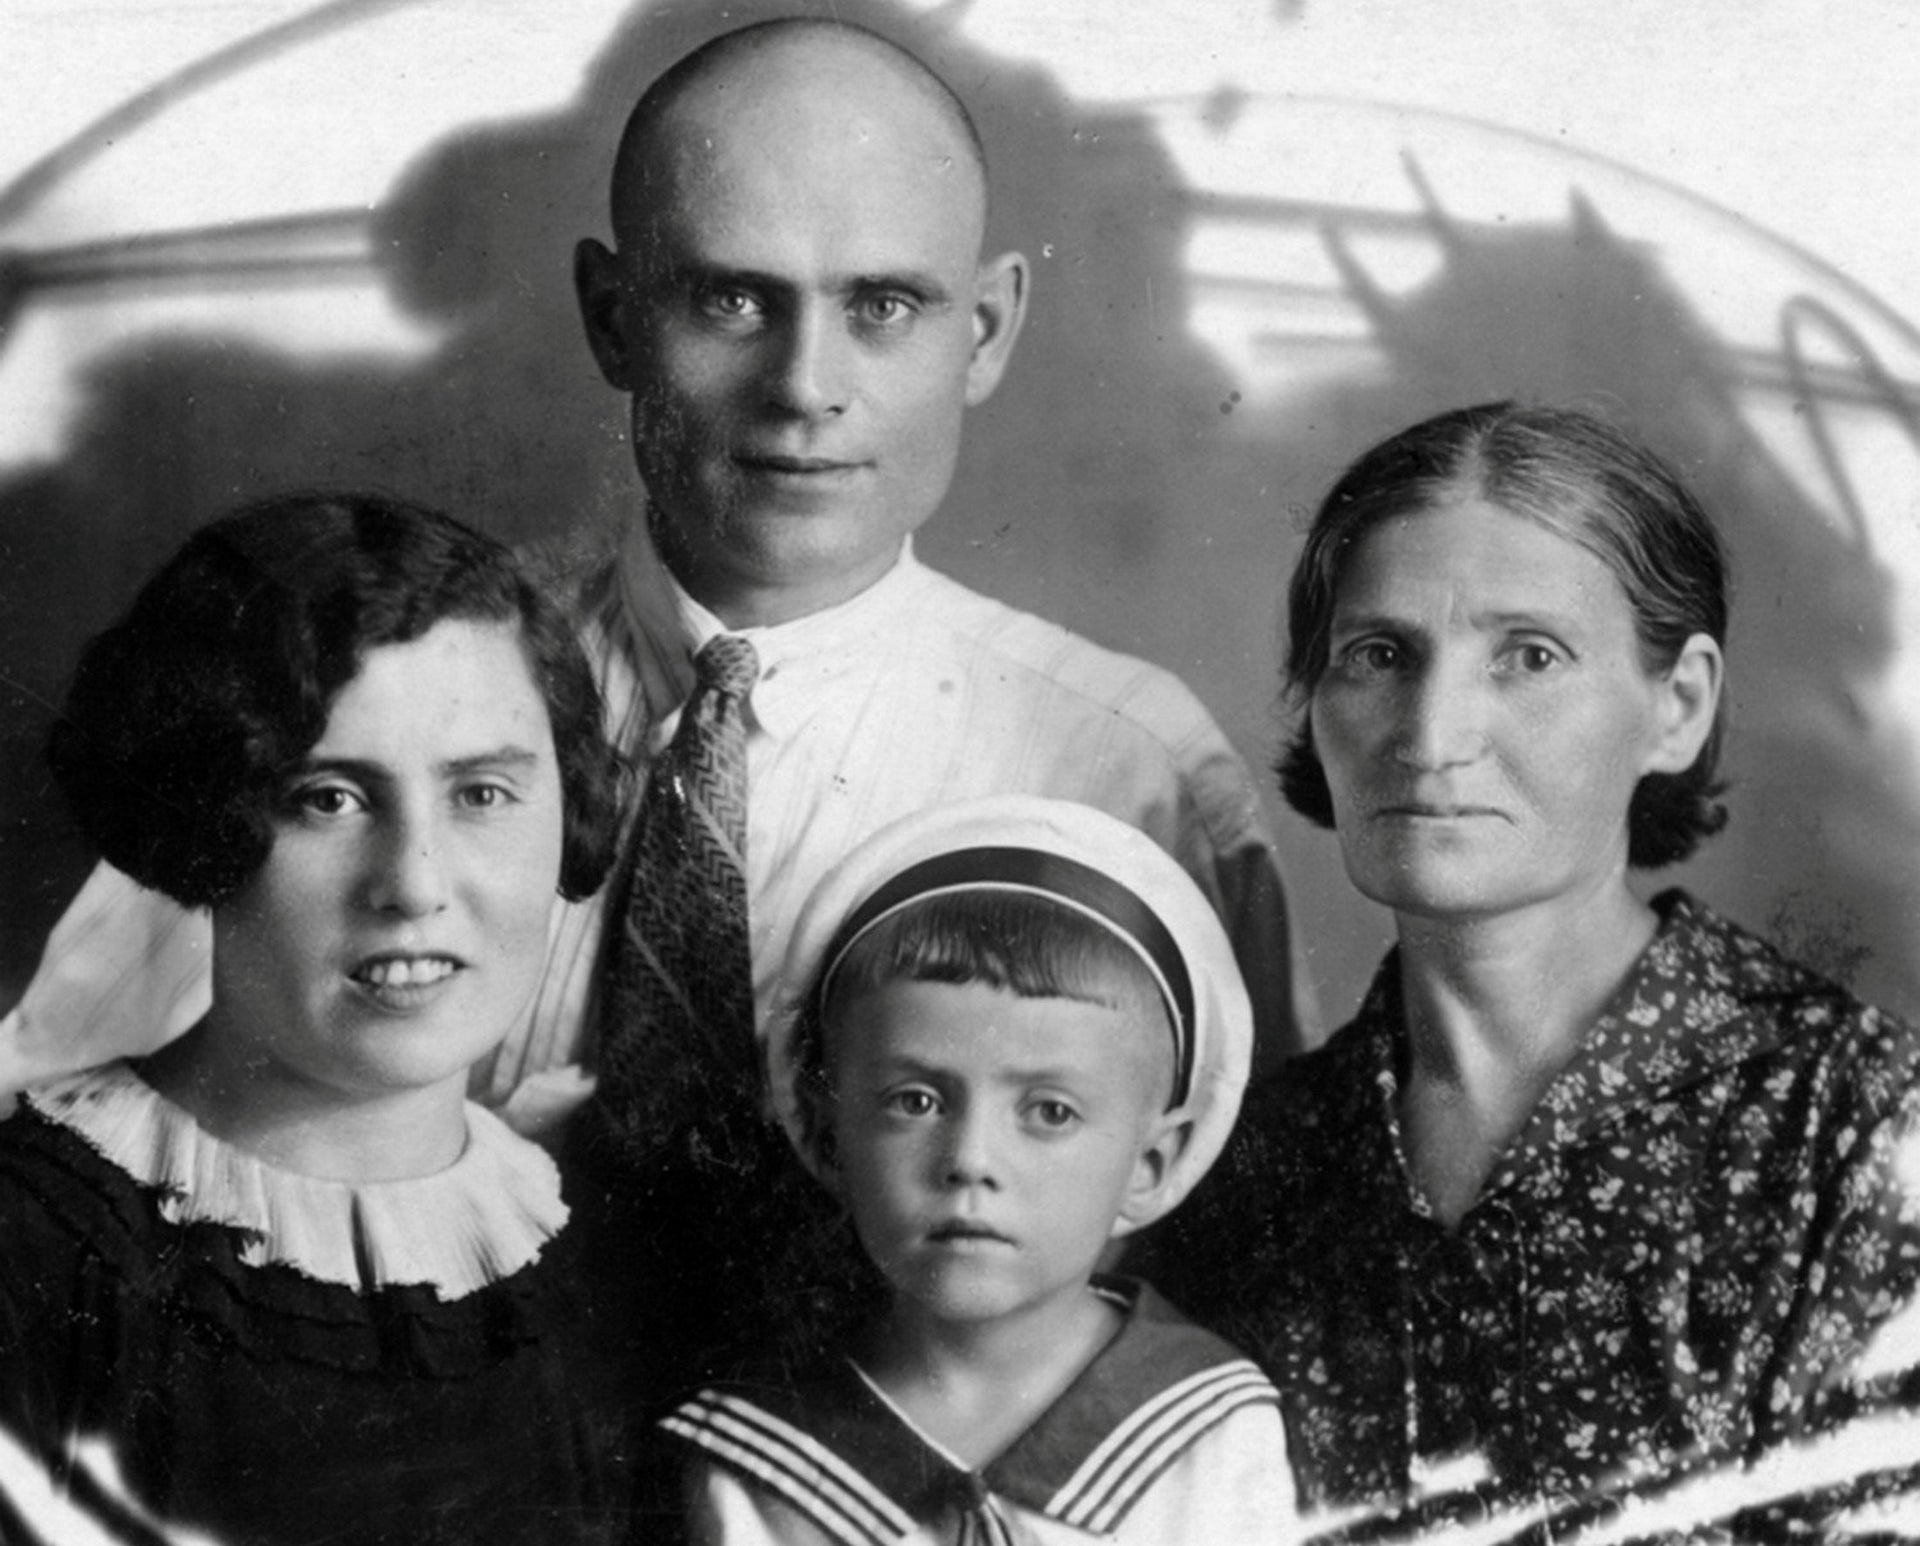 The Gramm family, all murdered by the Nazis in the Zmievskaya Balka massacre in August 1942. None of the victims' names have ever been published in schoolbooks or by the state.